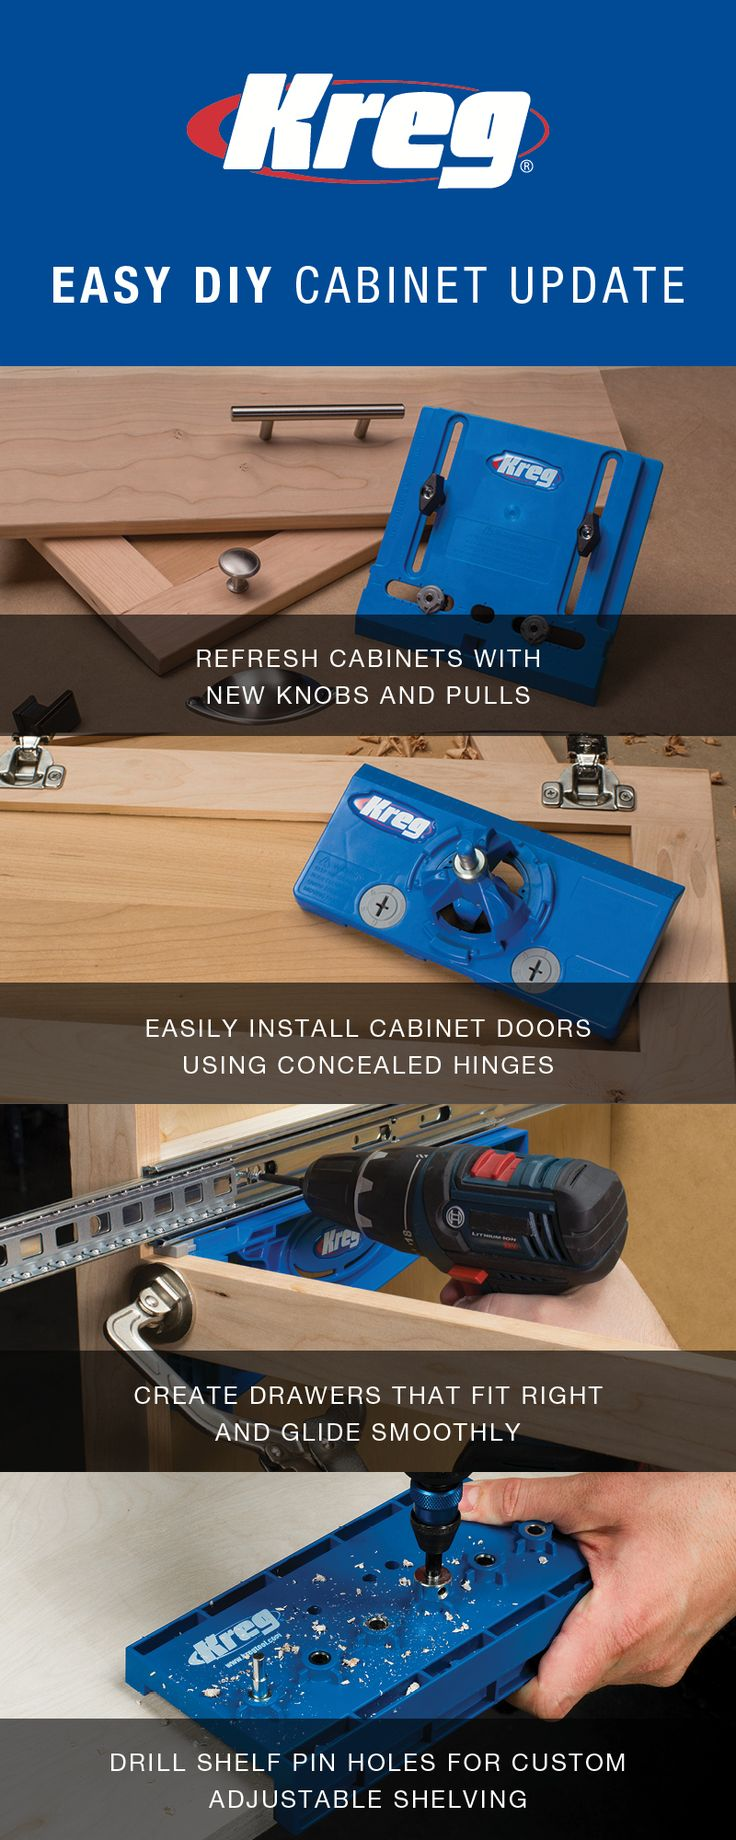 Kreg Hardware Installation Solutions make it easy to add the perfect final touch to your projects by allowing you to confidently install knobs and pulls, concealed door hinges, drawer slides, and adjustable shelves.